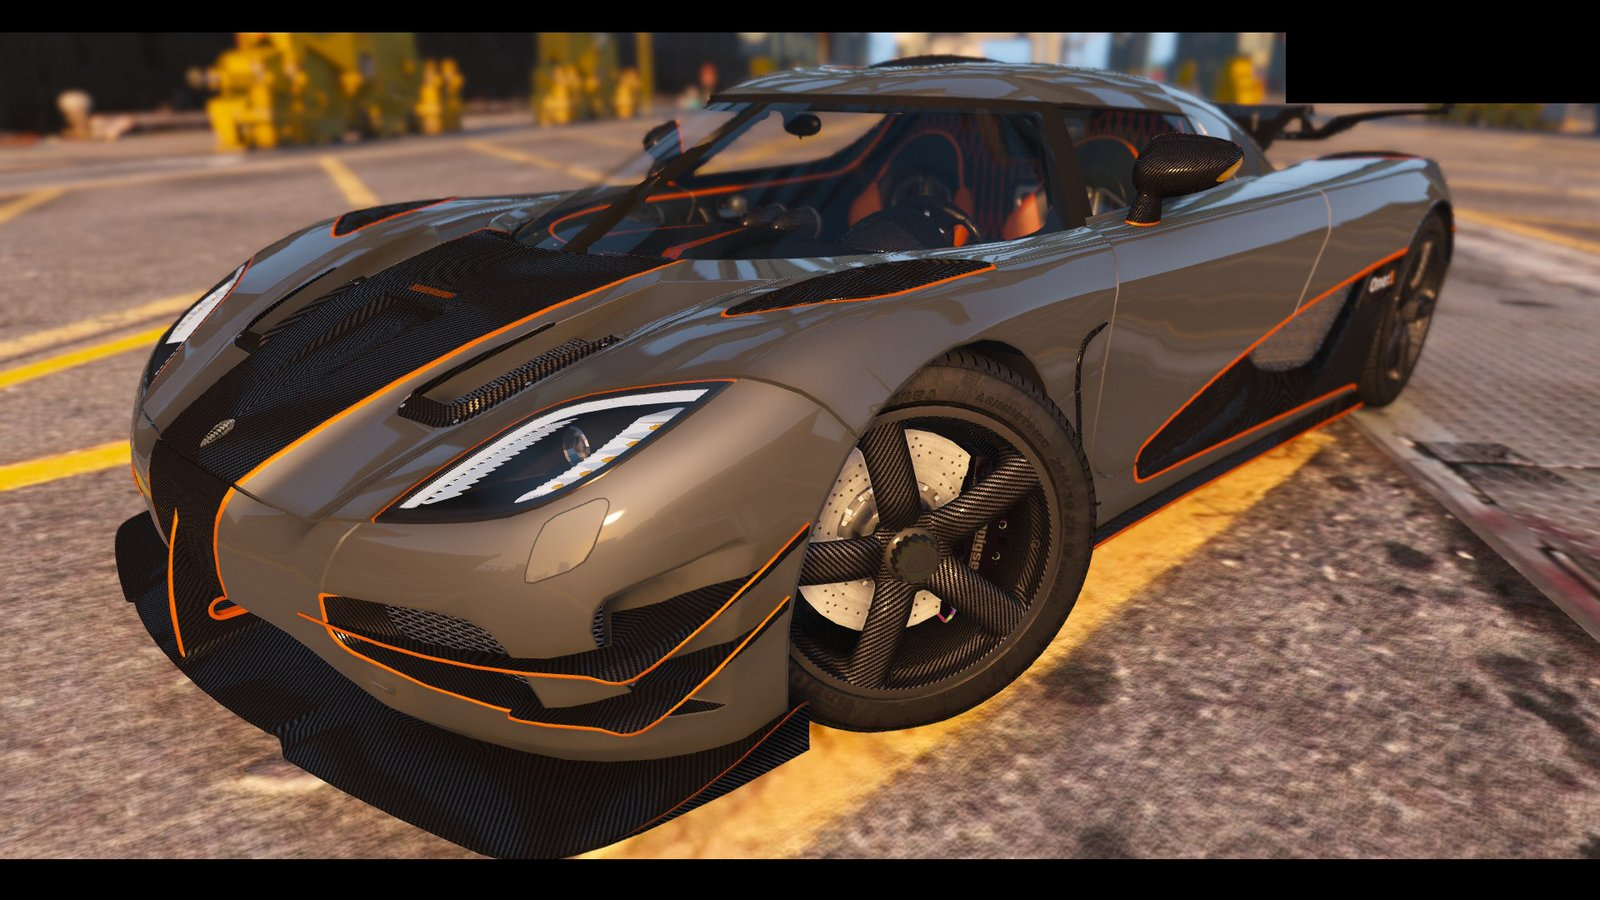 koenigsegg mod gta 5 with 3134 Koenigsegg Agera R 2014 on 42710 Koenigsegg One1 Epm additionally 1936 Ford Pickup Ratrod Style together with Asphalt 8 Traffic Pack Final Version together with 42710 Koenigsegg One1 Epm furthermore 64458 Nfs Rivals Koenigsegg Agera R Enforcer.